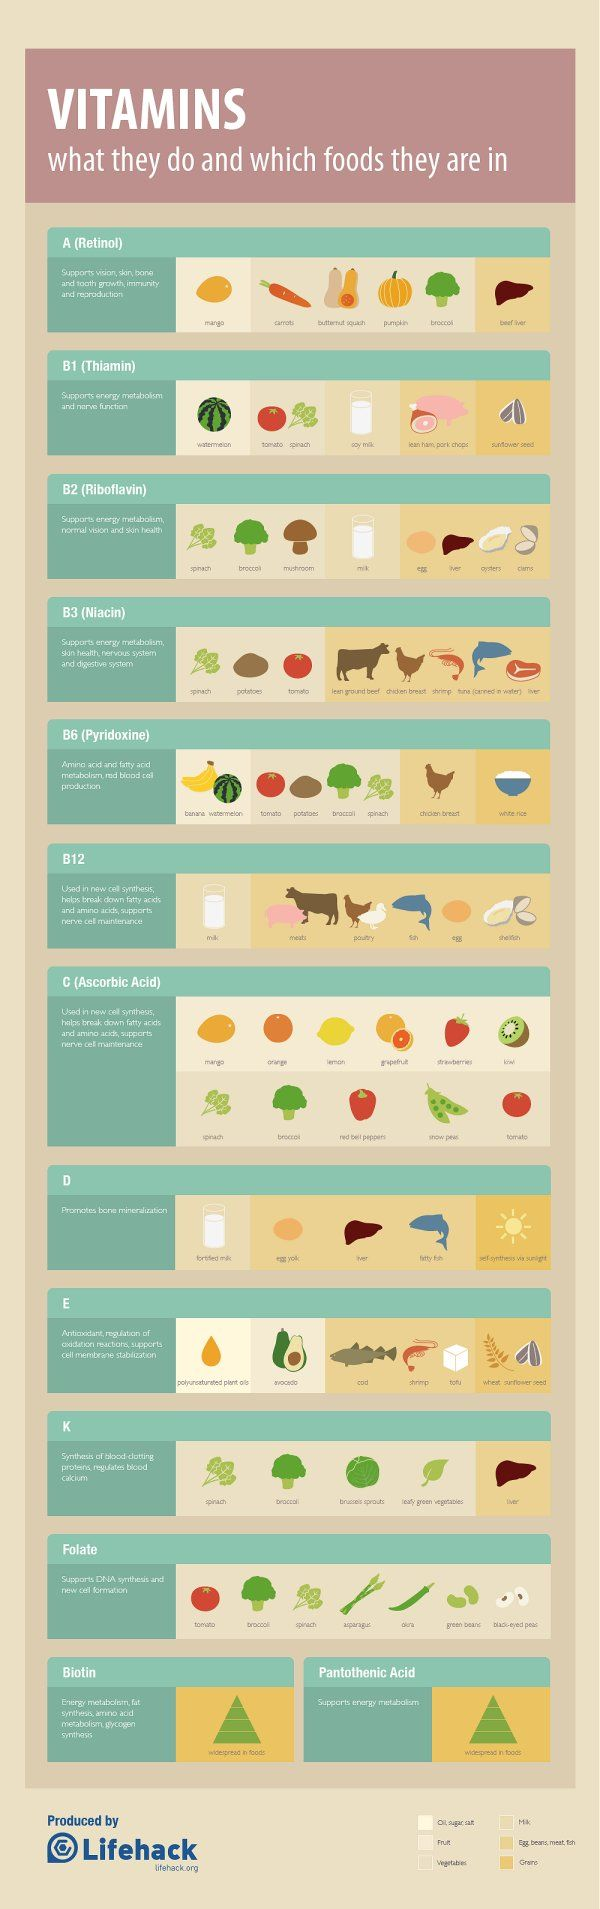 Infographic: Vitamins. What they do and which foods they are in